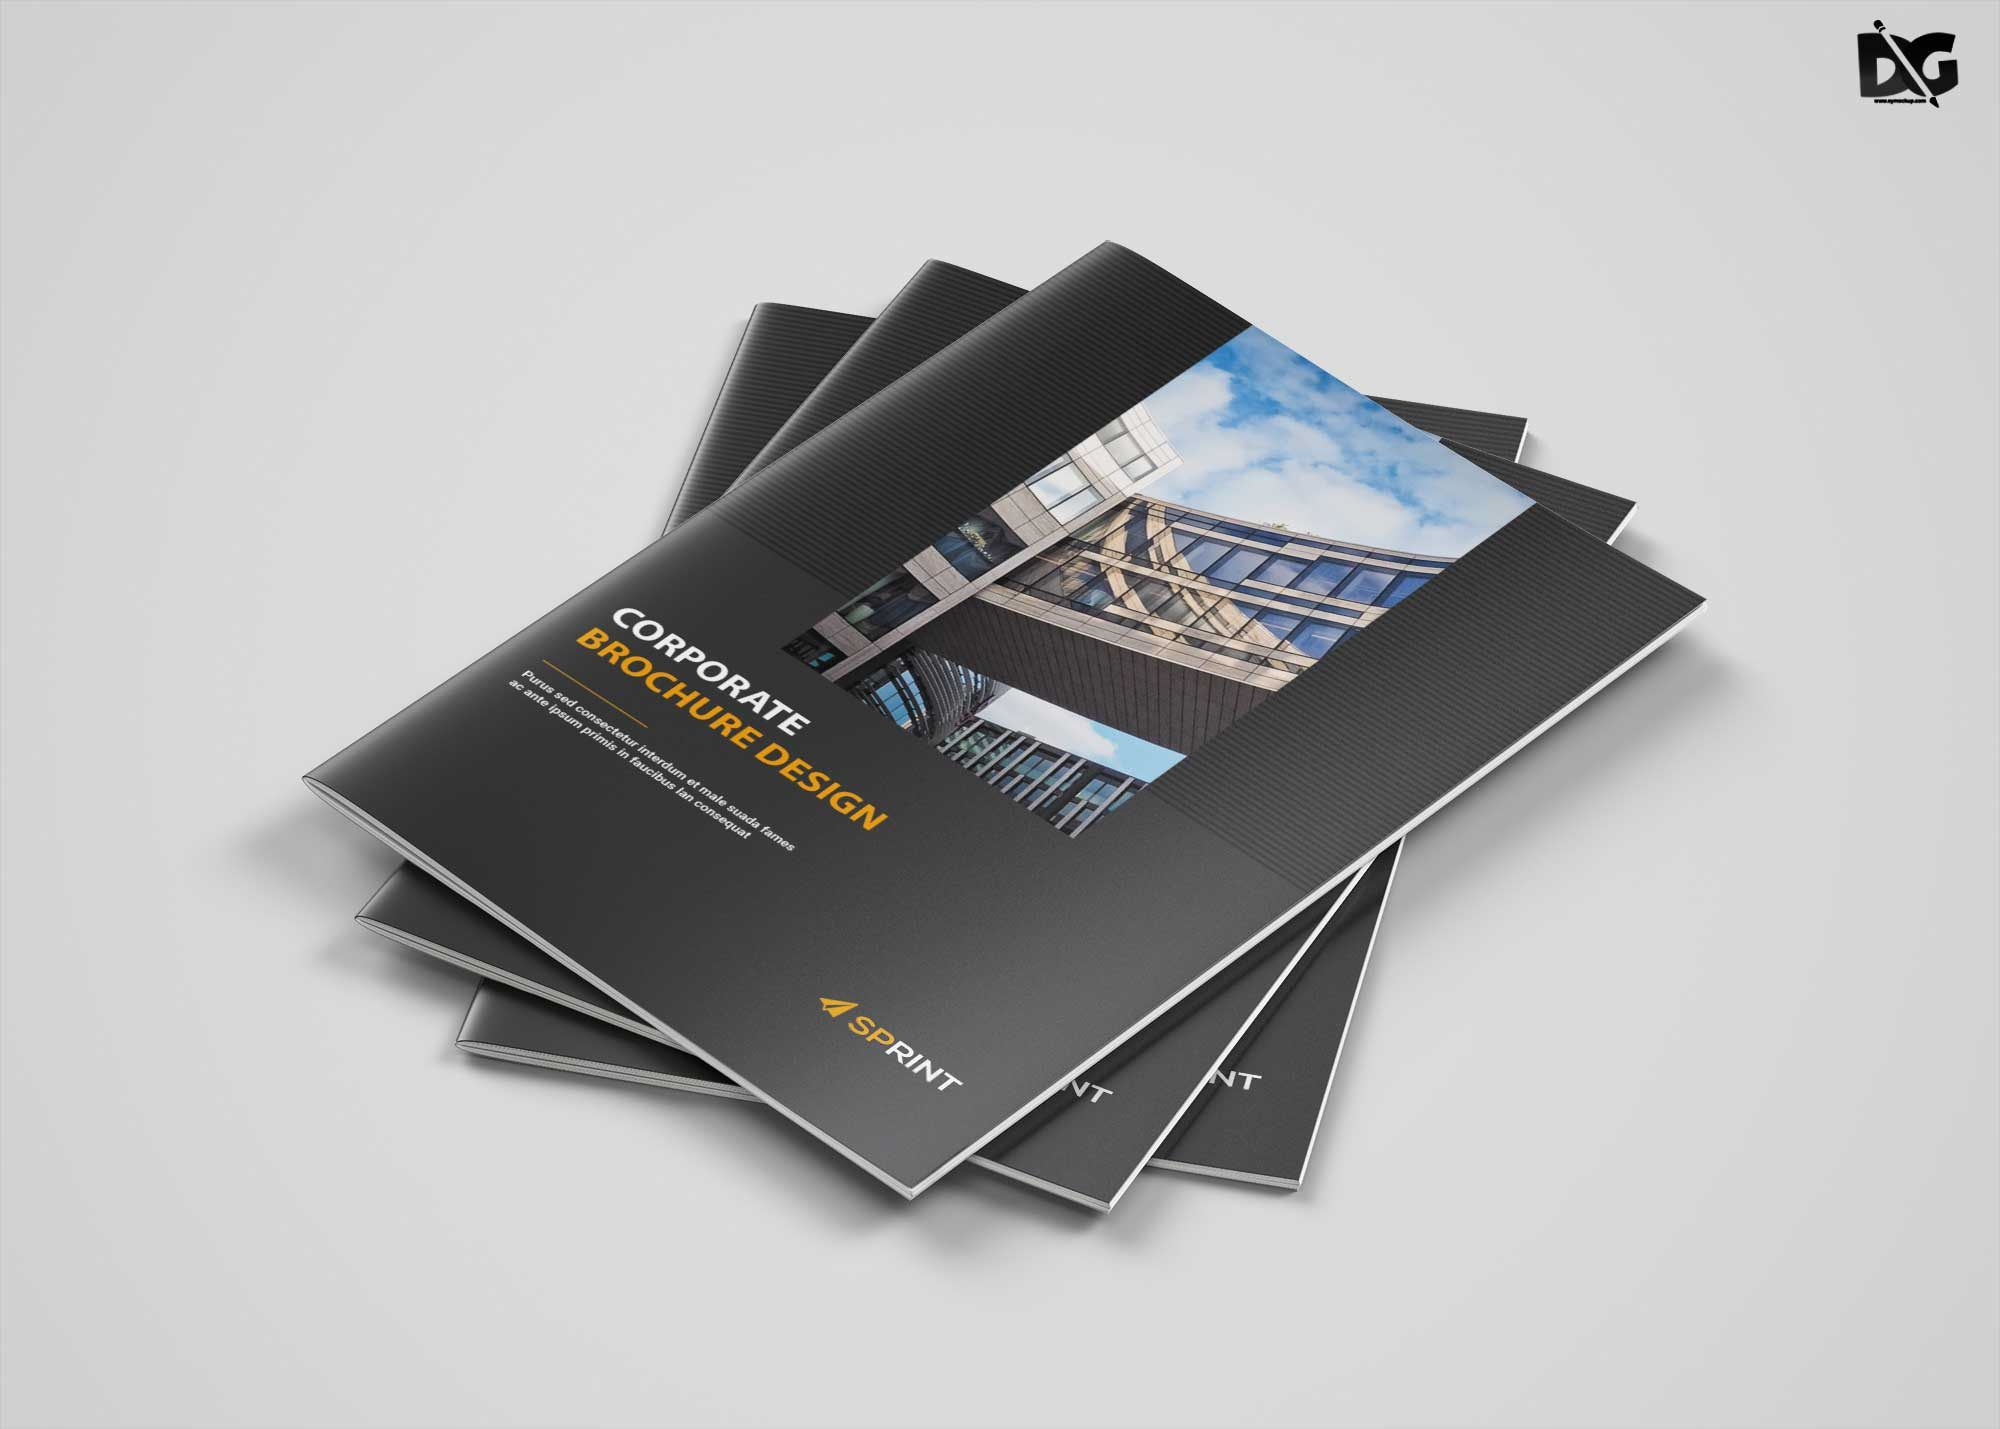 004 Awful Brochure Design Template Psd Free Download Inspiration  HotelFull